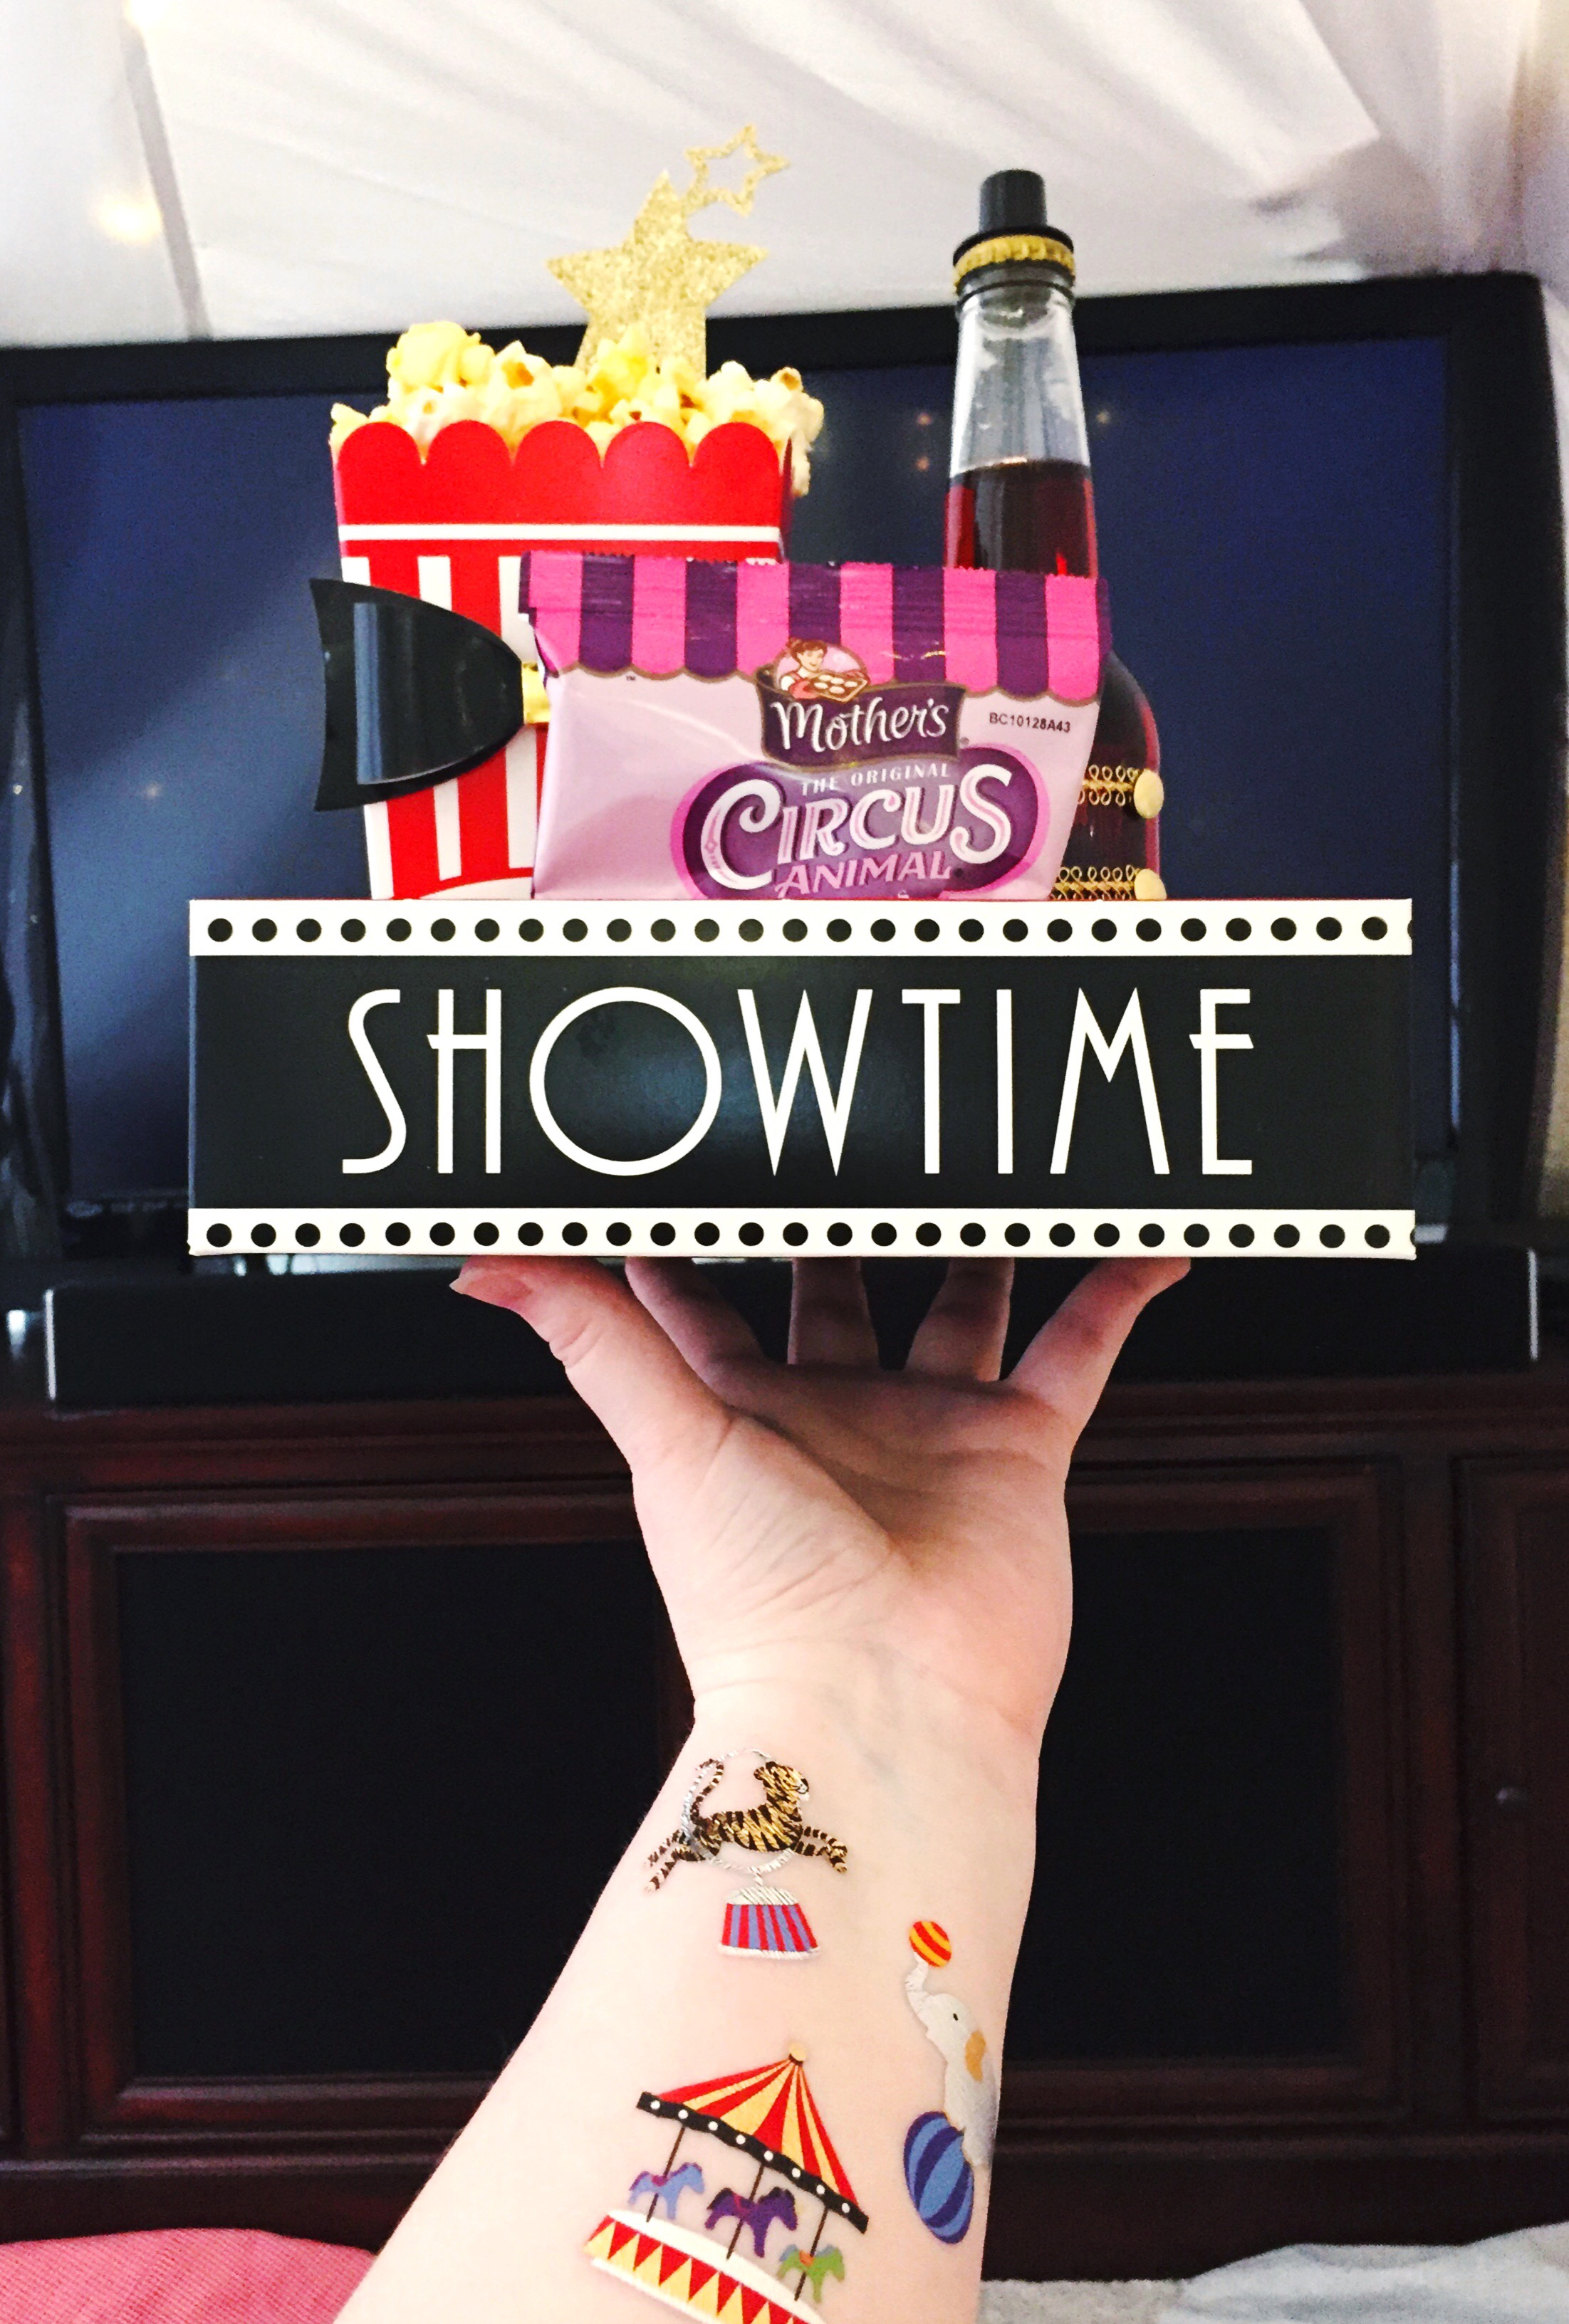 The Greatest Showman Movie Party_Food Concessions Tray_Circus Flash Tattoos_Fun tats.JPG